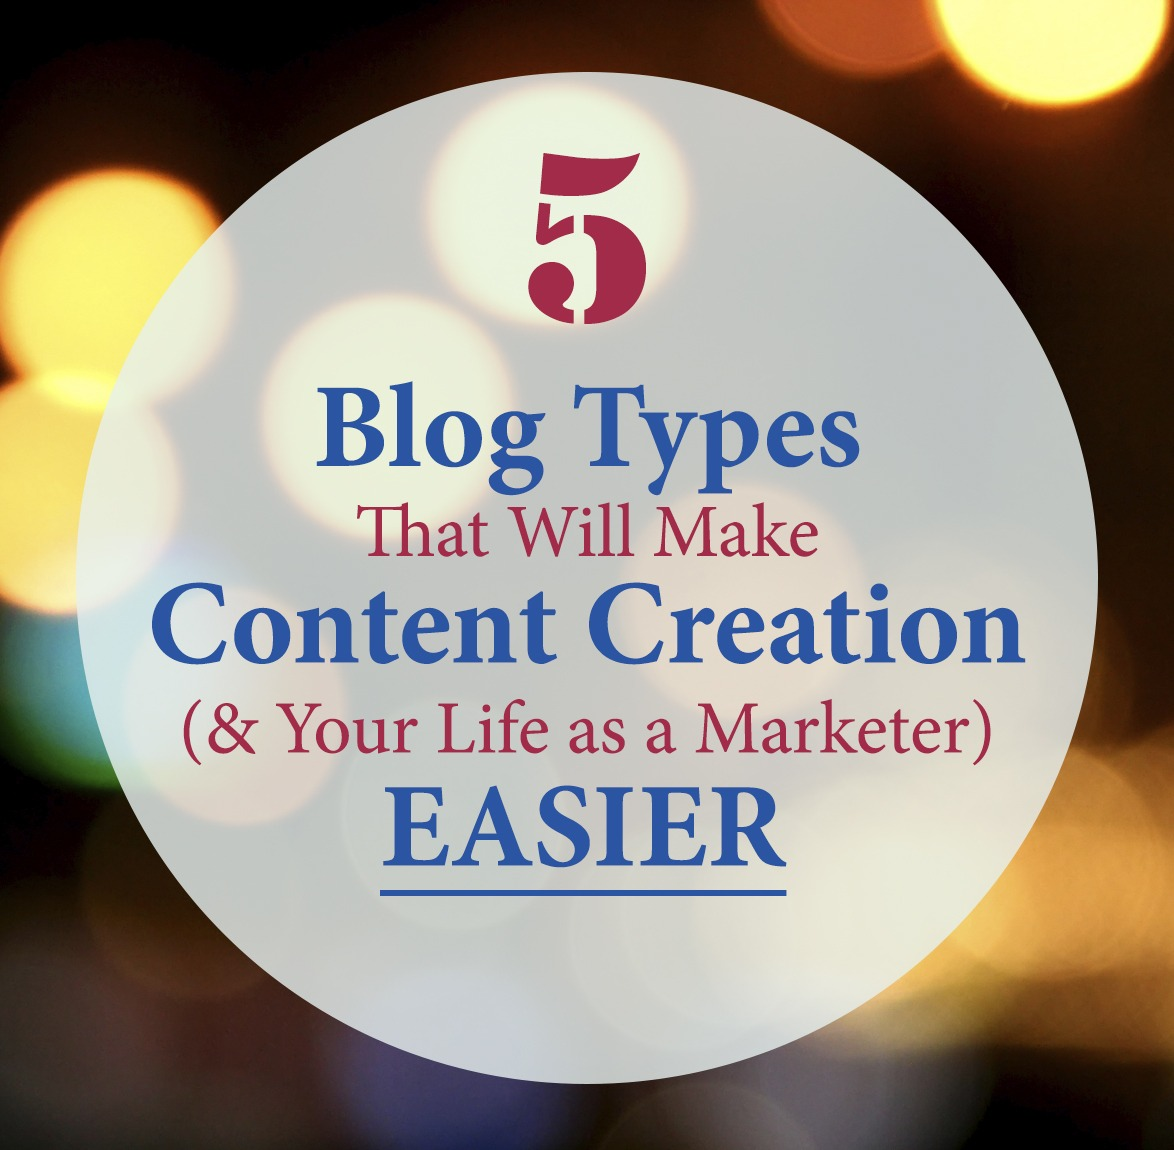 5 Blog Types That Will Make Content Creation (and Your Life as a Marketer) Easier